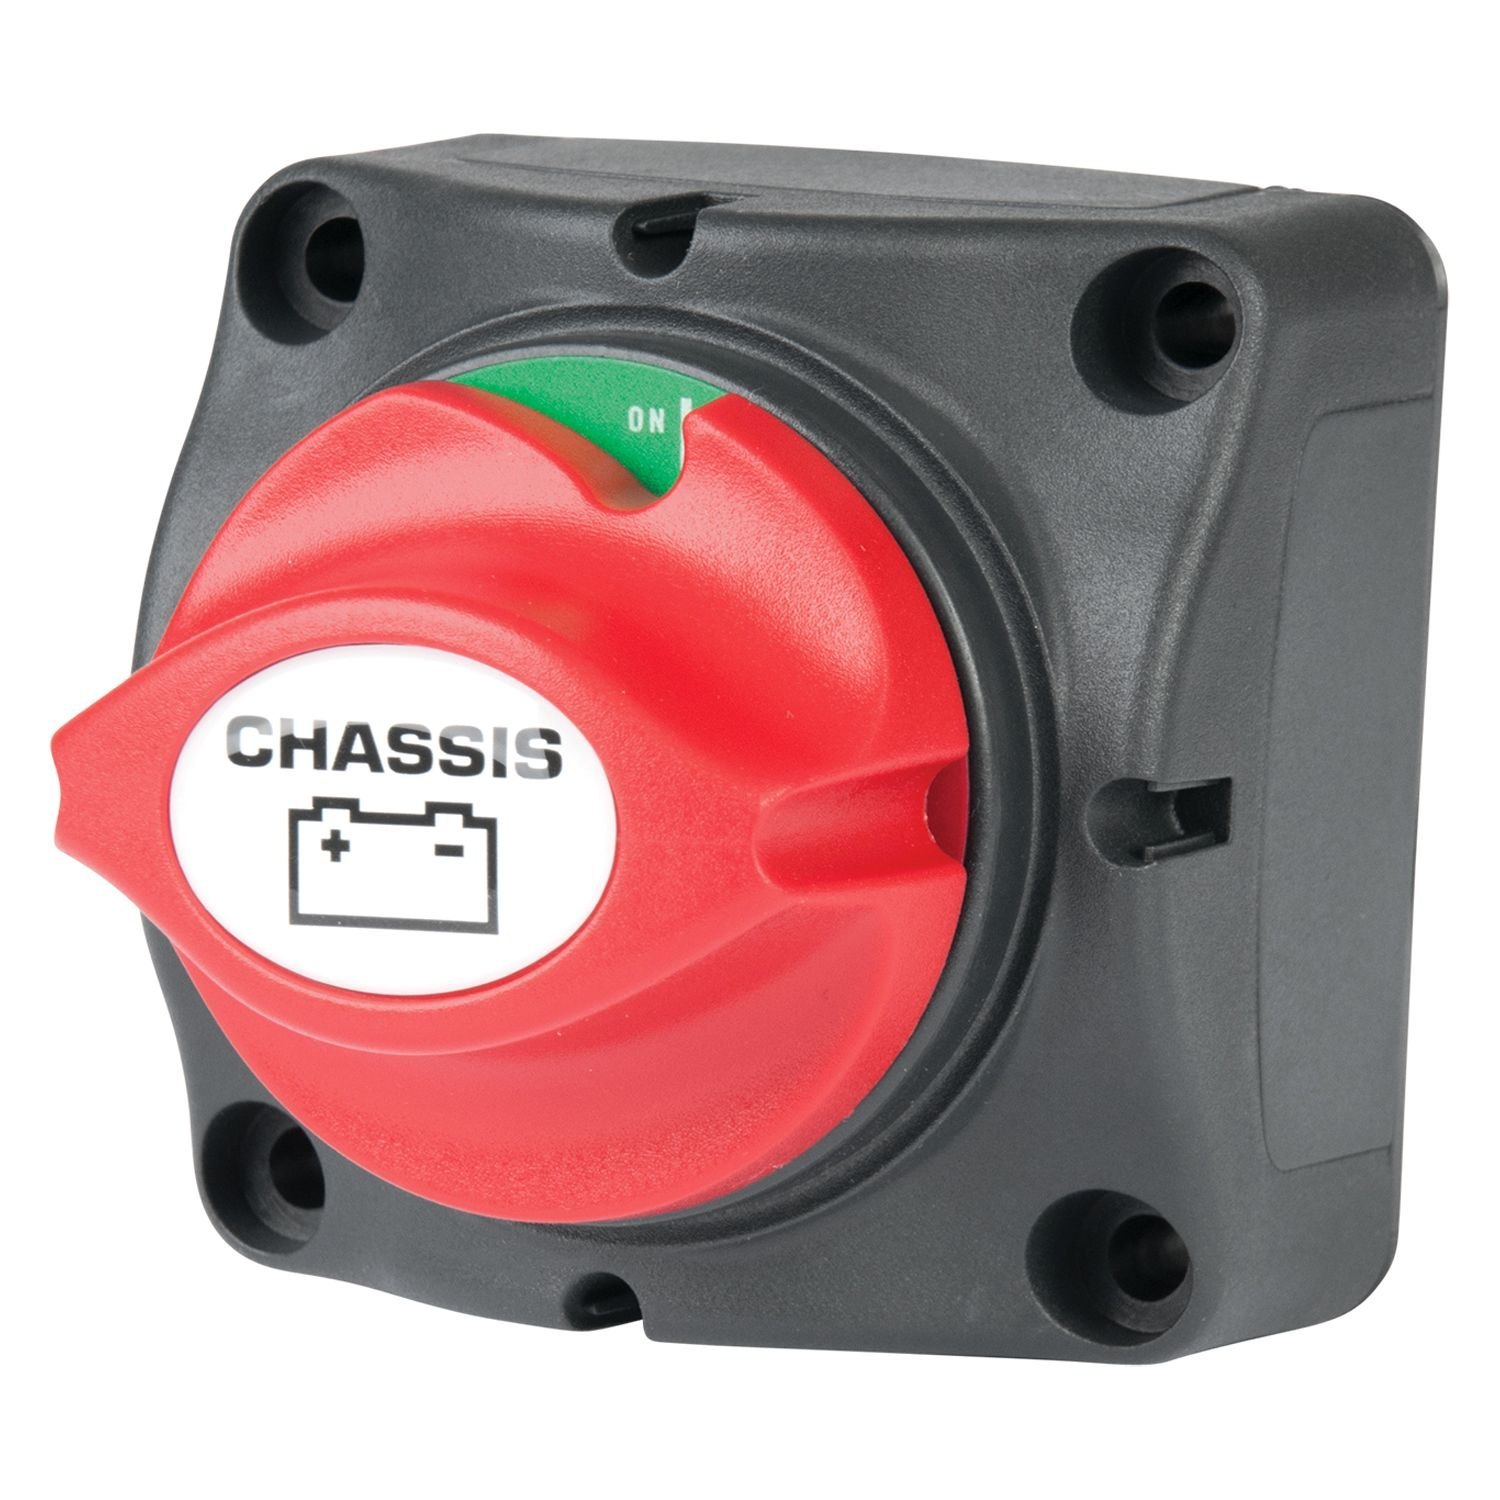 Battery Master Switch : Parkpower battery master switches